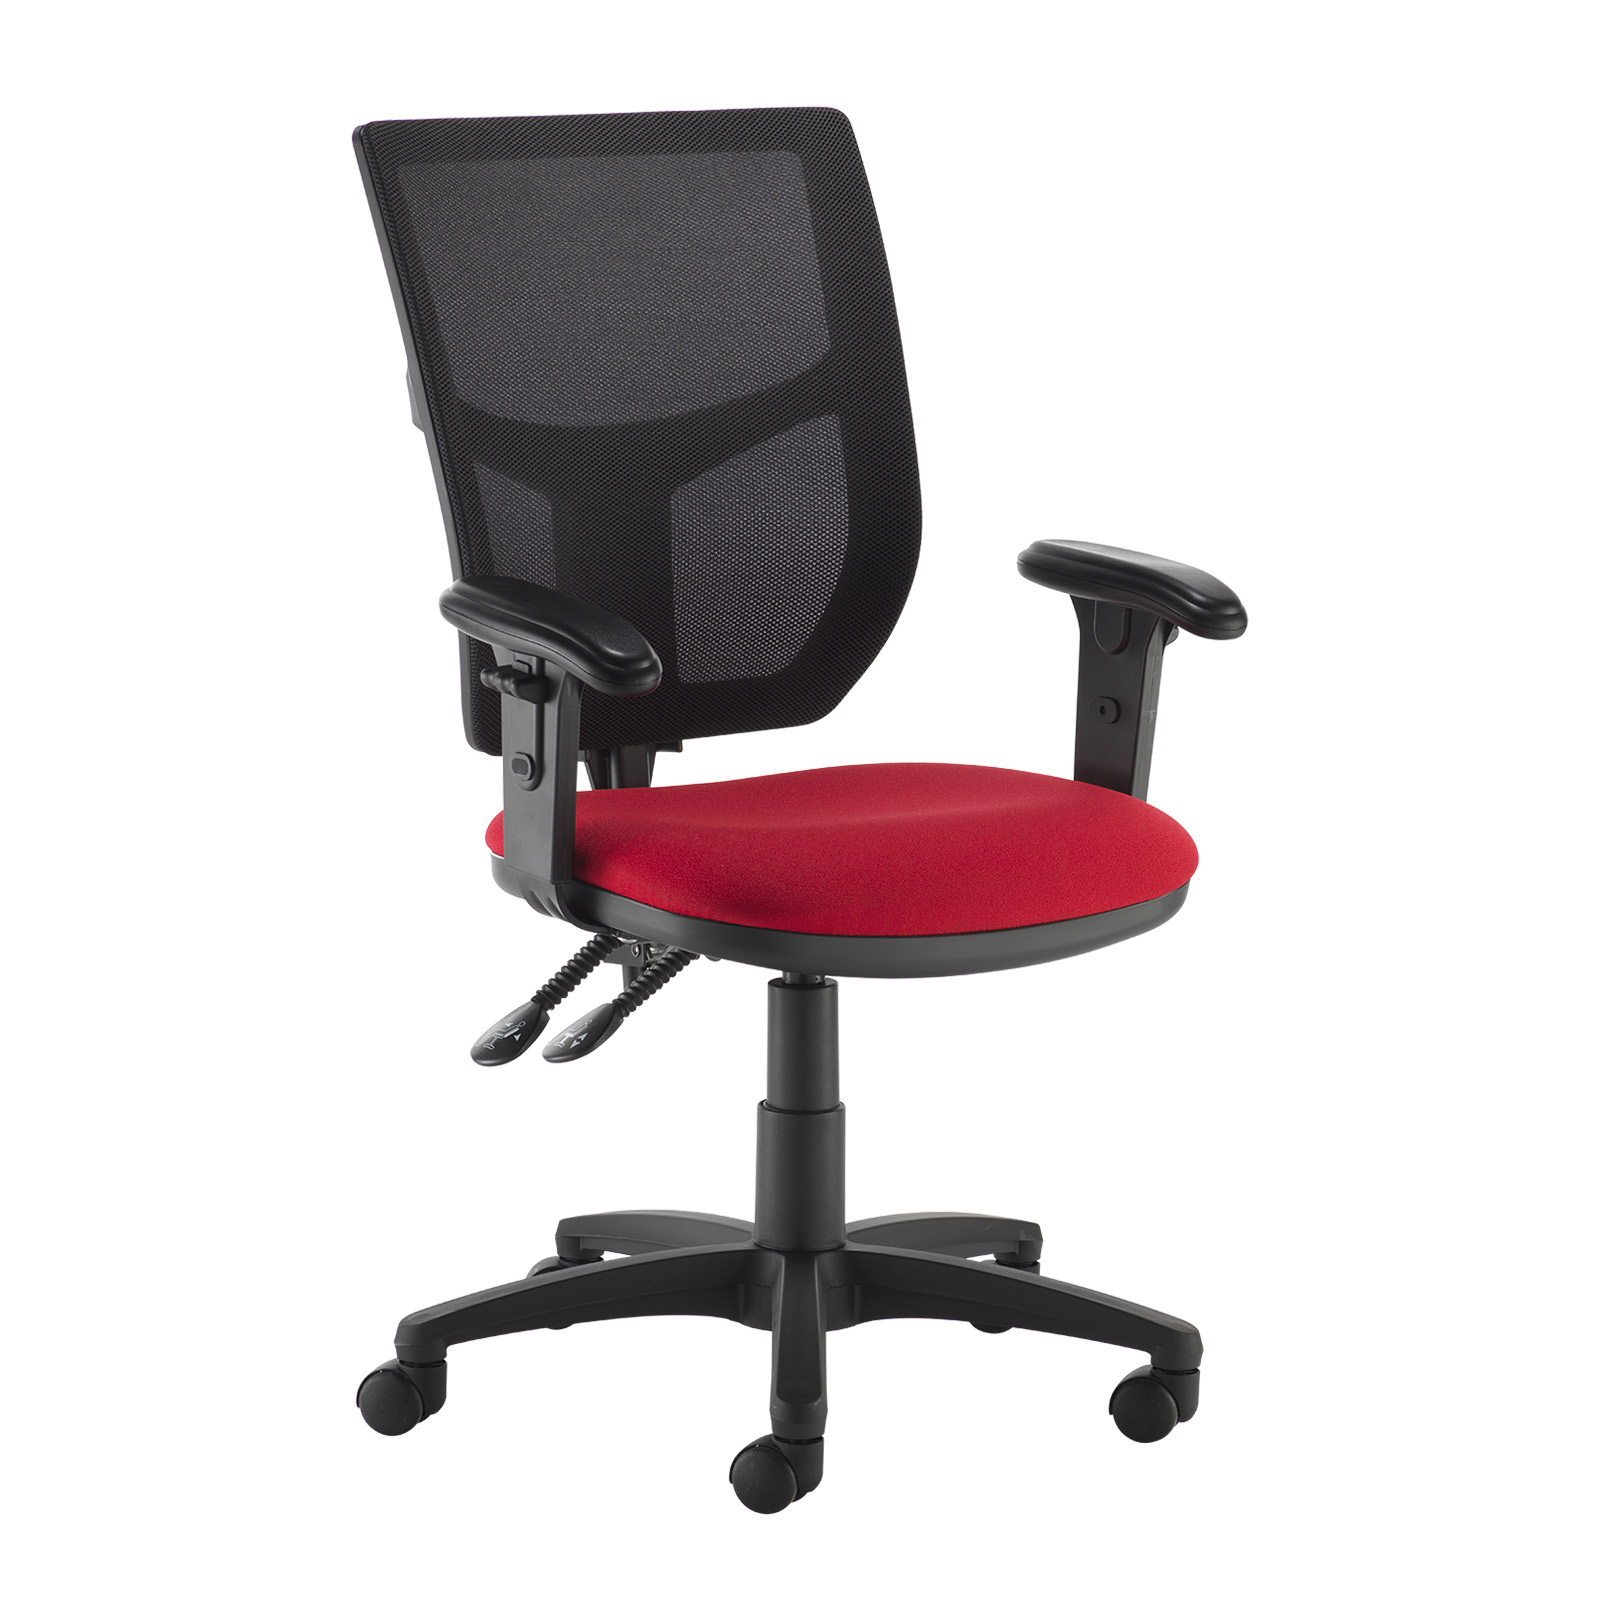 Desk Chairs Altino 2 lever high mesh back operators chair with adjustable arms - red